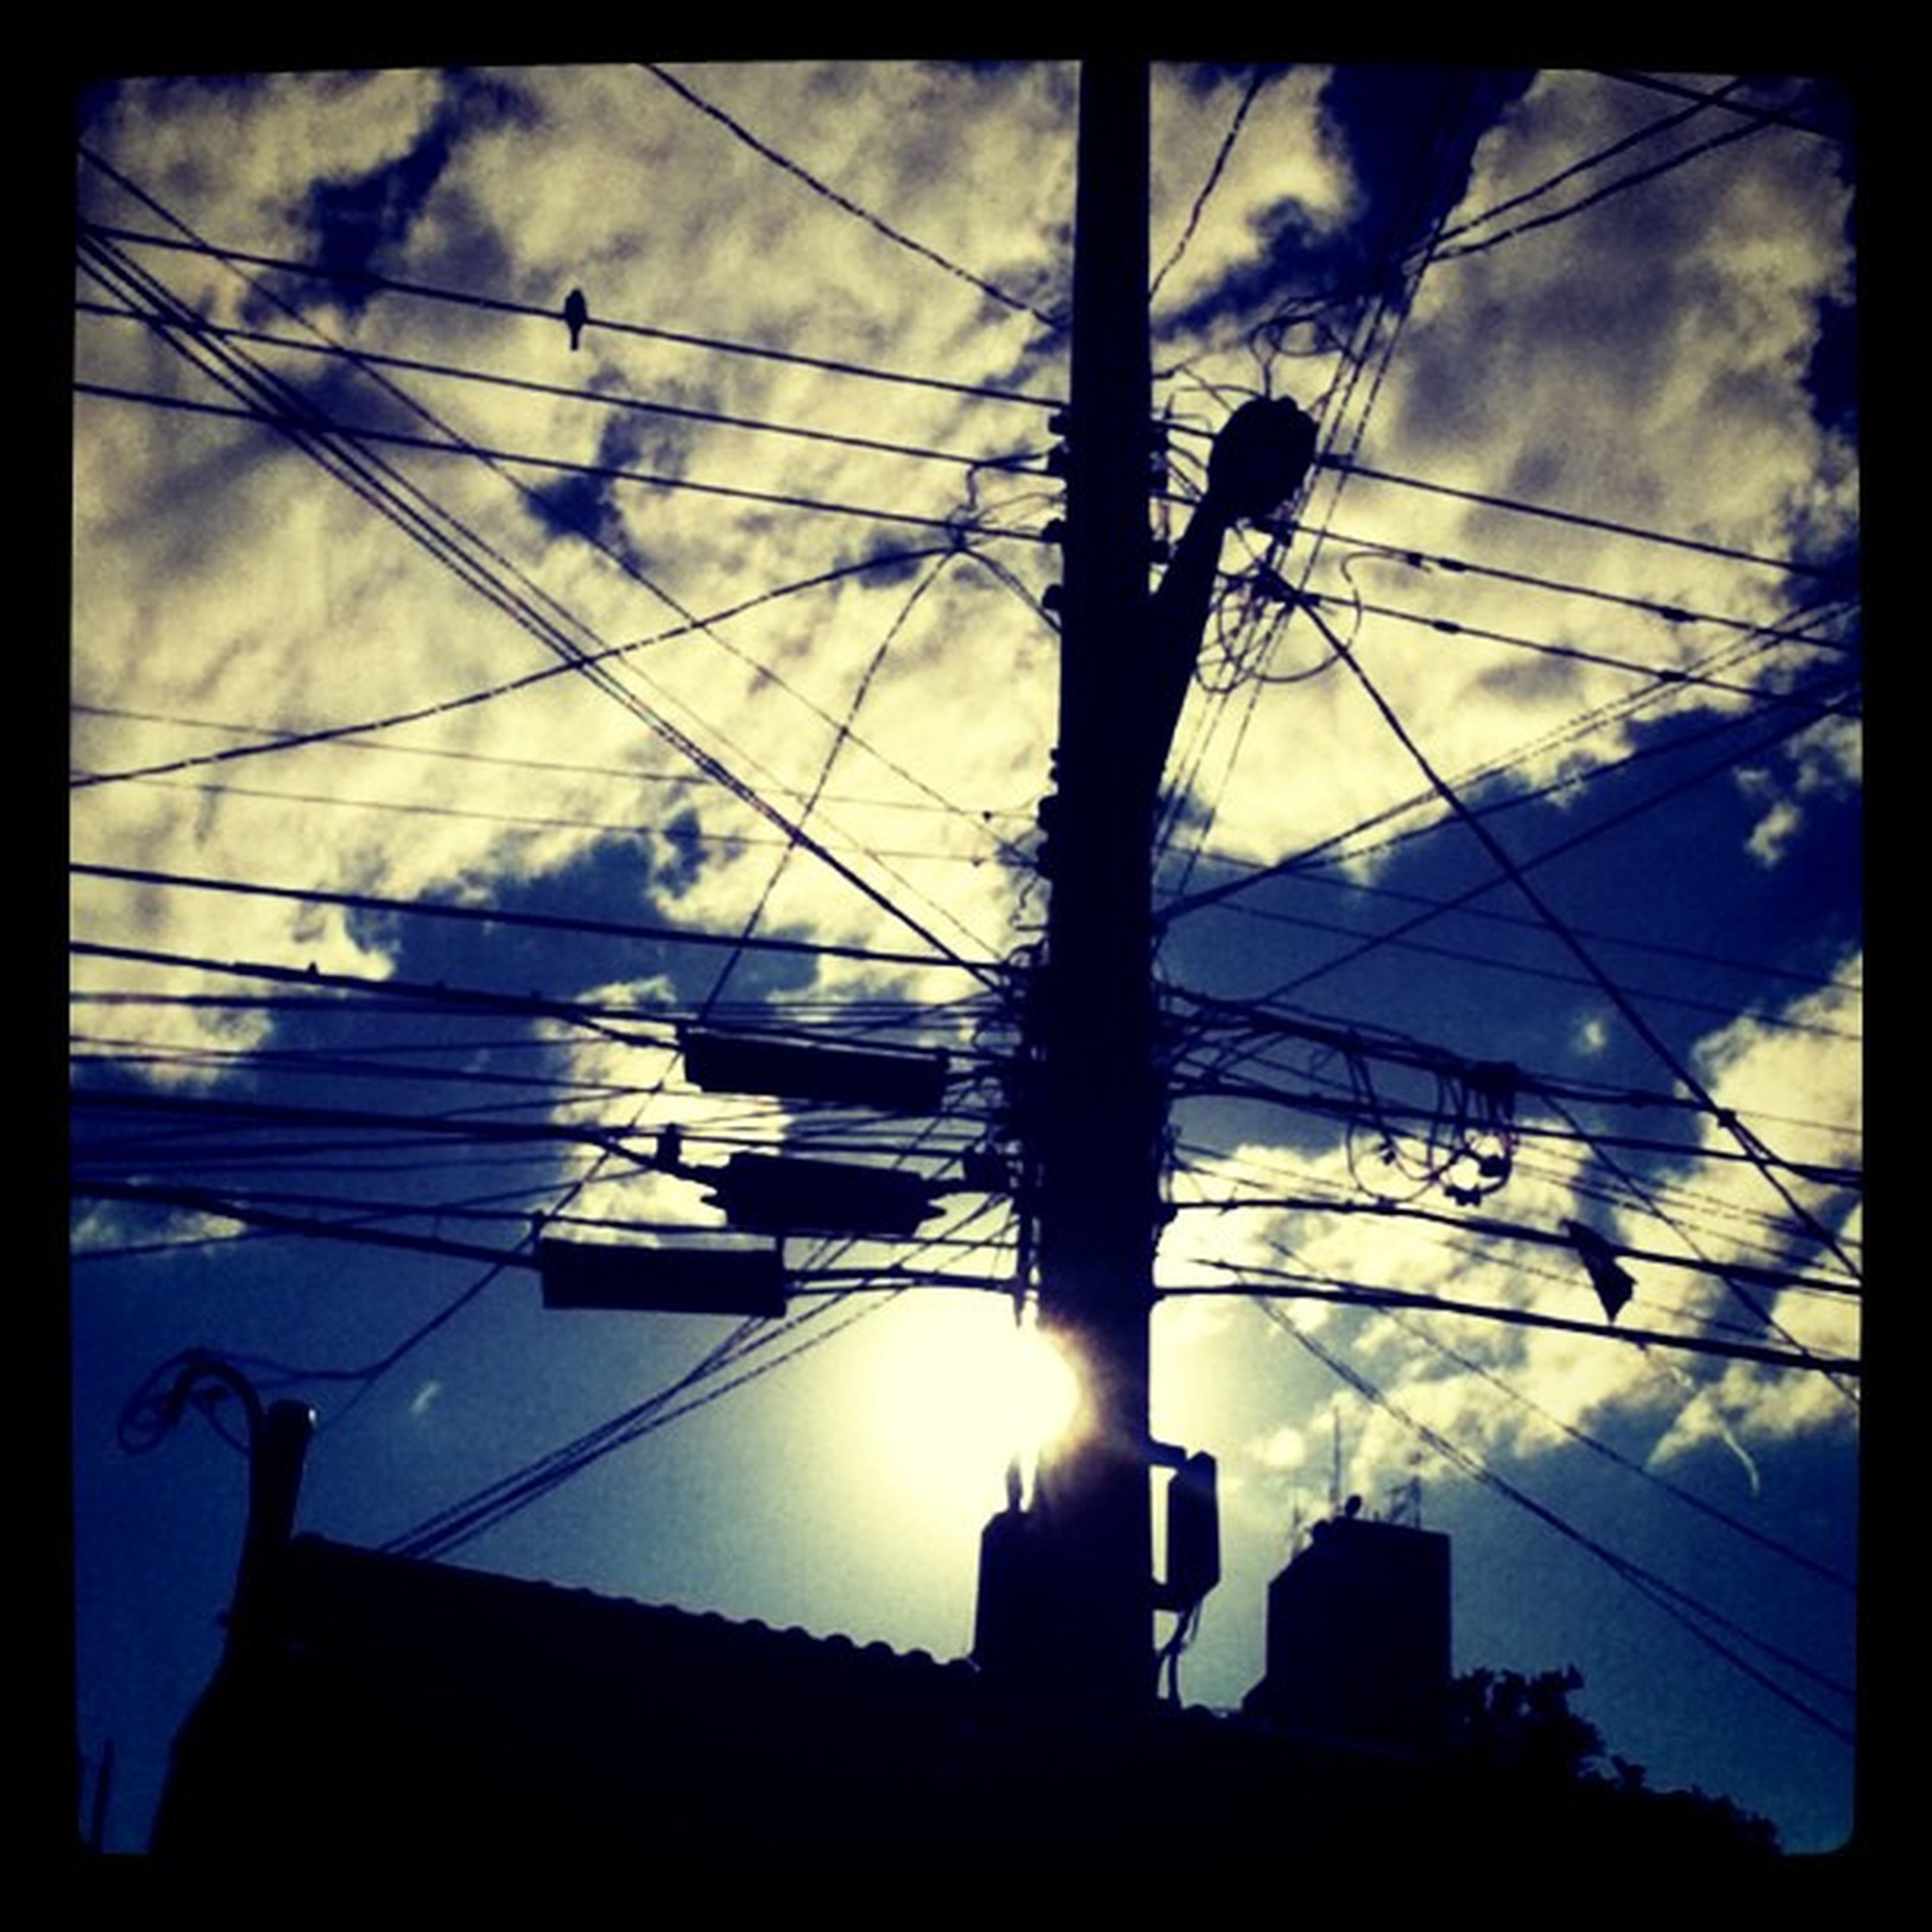 sky, low angle view, cloud - sky, silhouette, power line, electricity, power supply, cloudy, transfer print, cable, cloud, auto post production filter, electricity pylon, built structure, reflection, no people, technology, sunlight, fuel and power generation, architecture